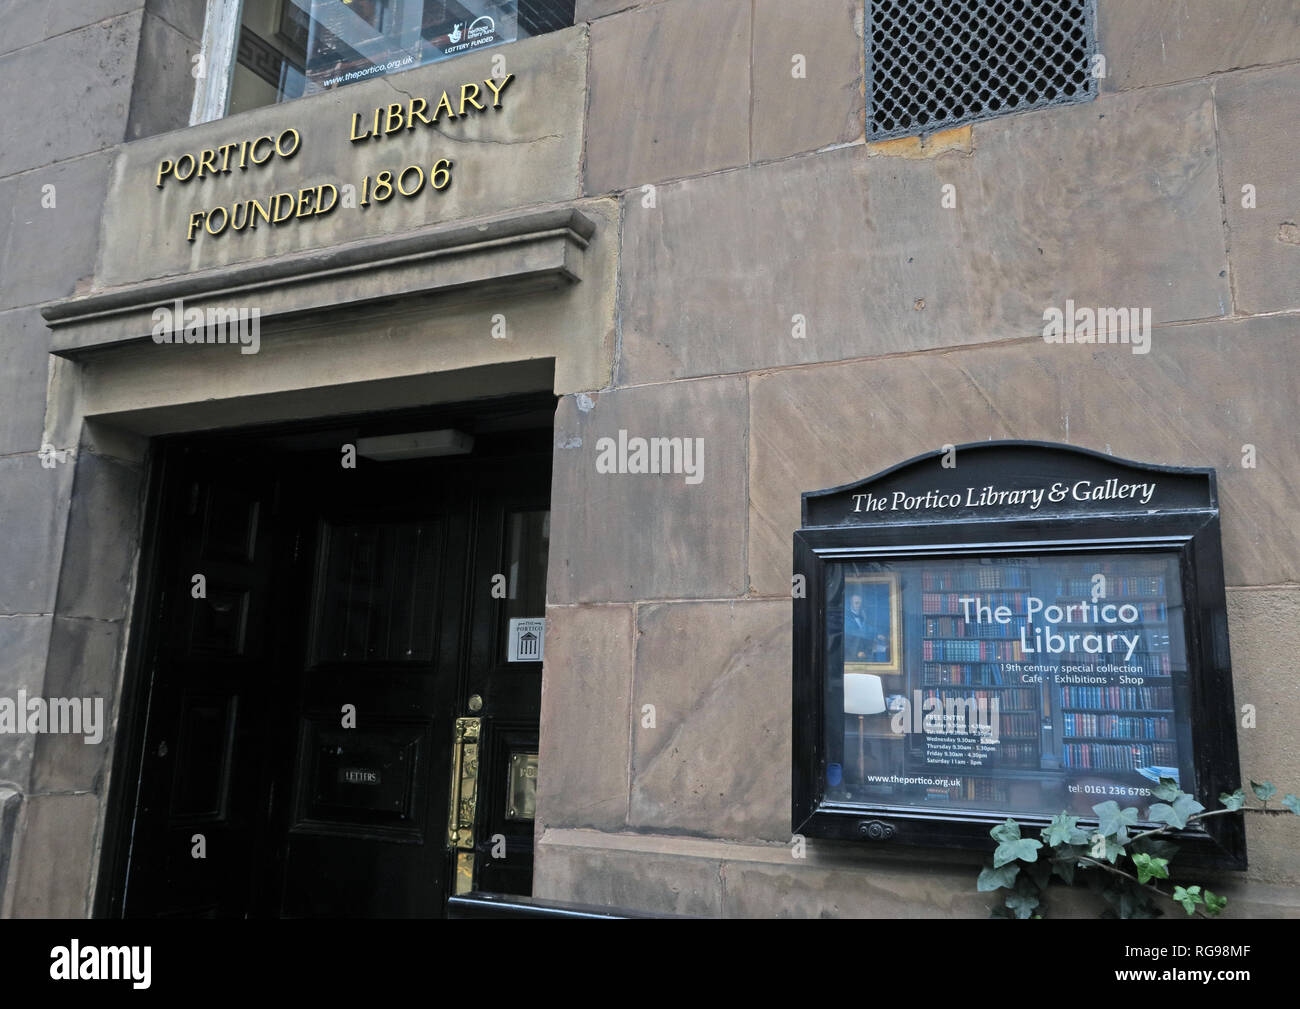 Portico Library and Art Gallery, Founded 1806, Mosley Street, Manchester, North West England, UK, - Stock Image